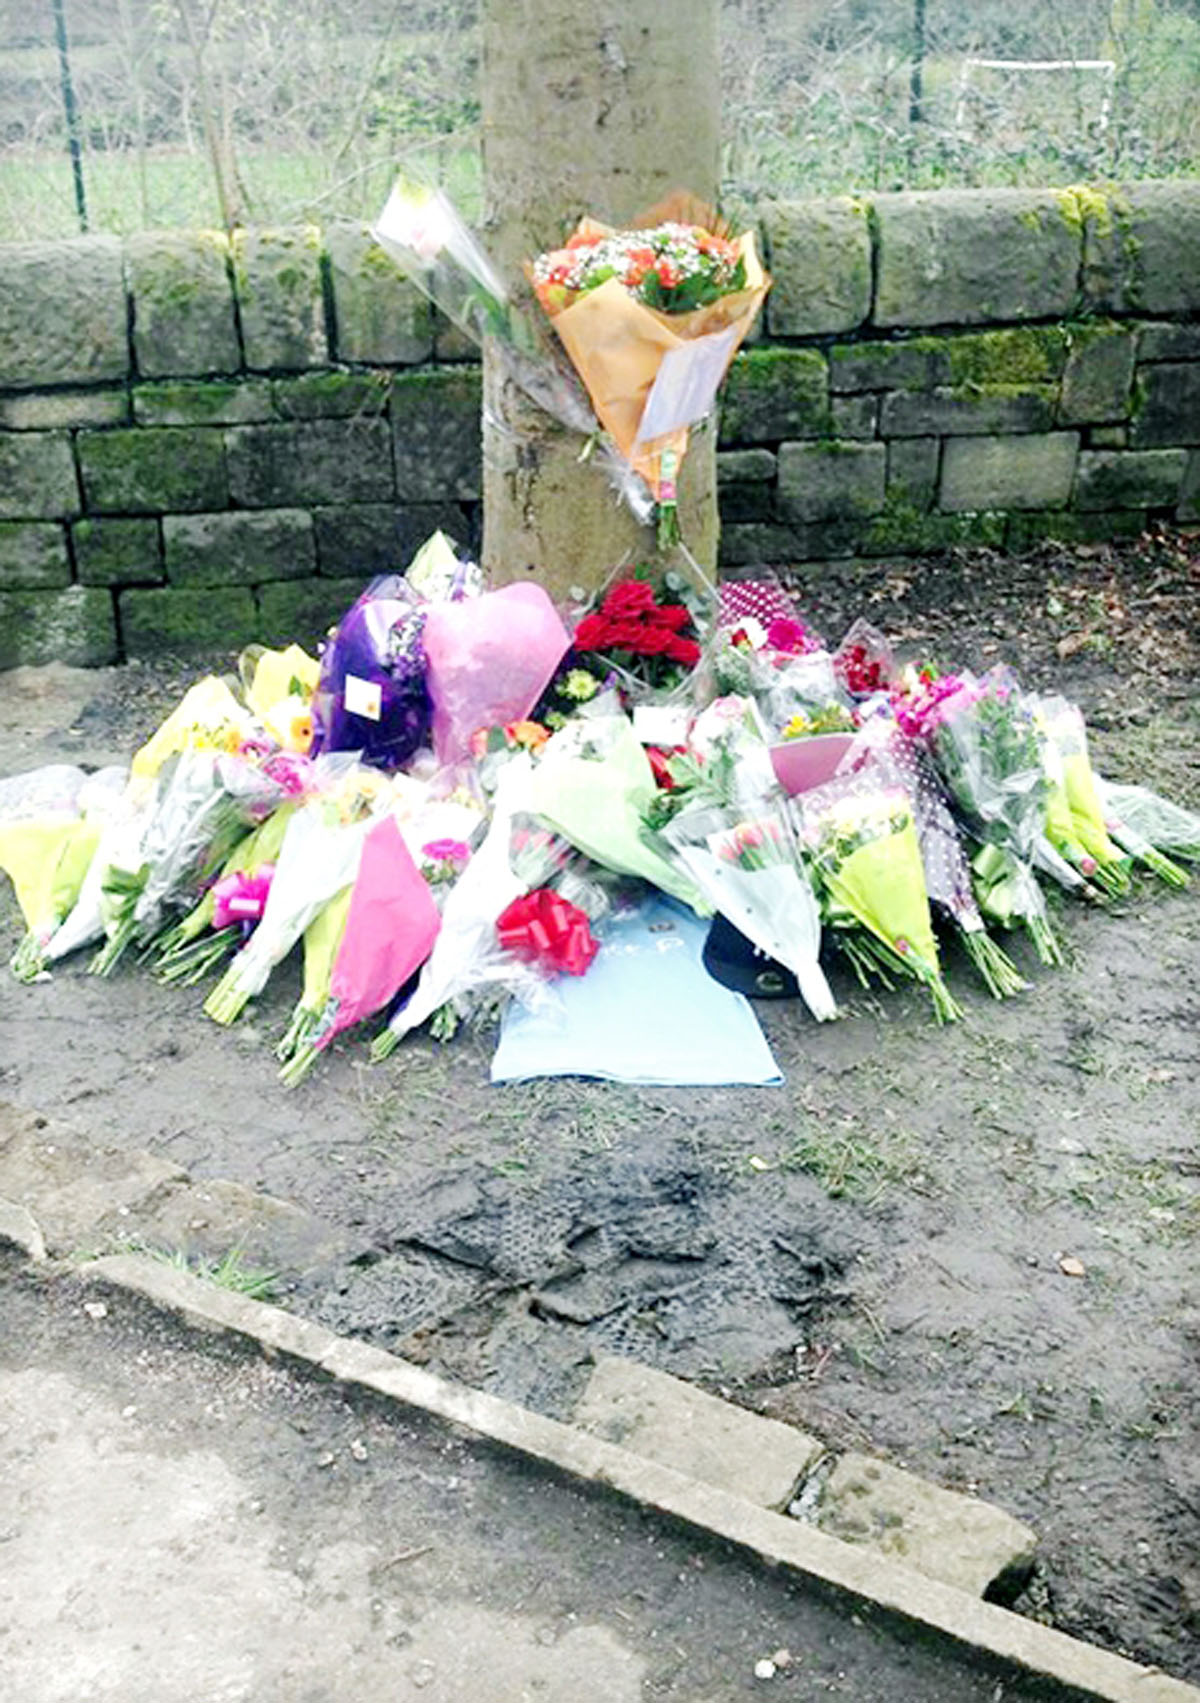 The victim, who has been named locally as 18-year-old Callum Brown, died when the car he was a passenger in smashed into a bus shelter